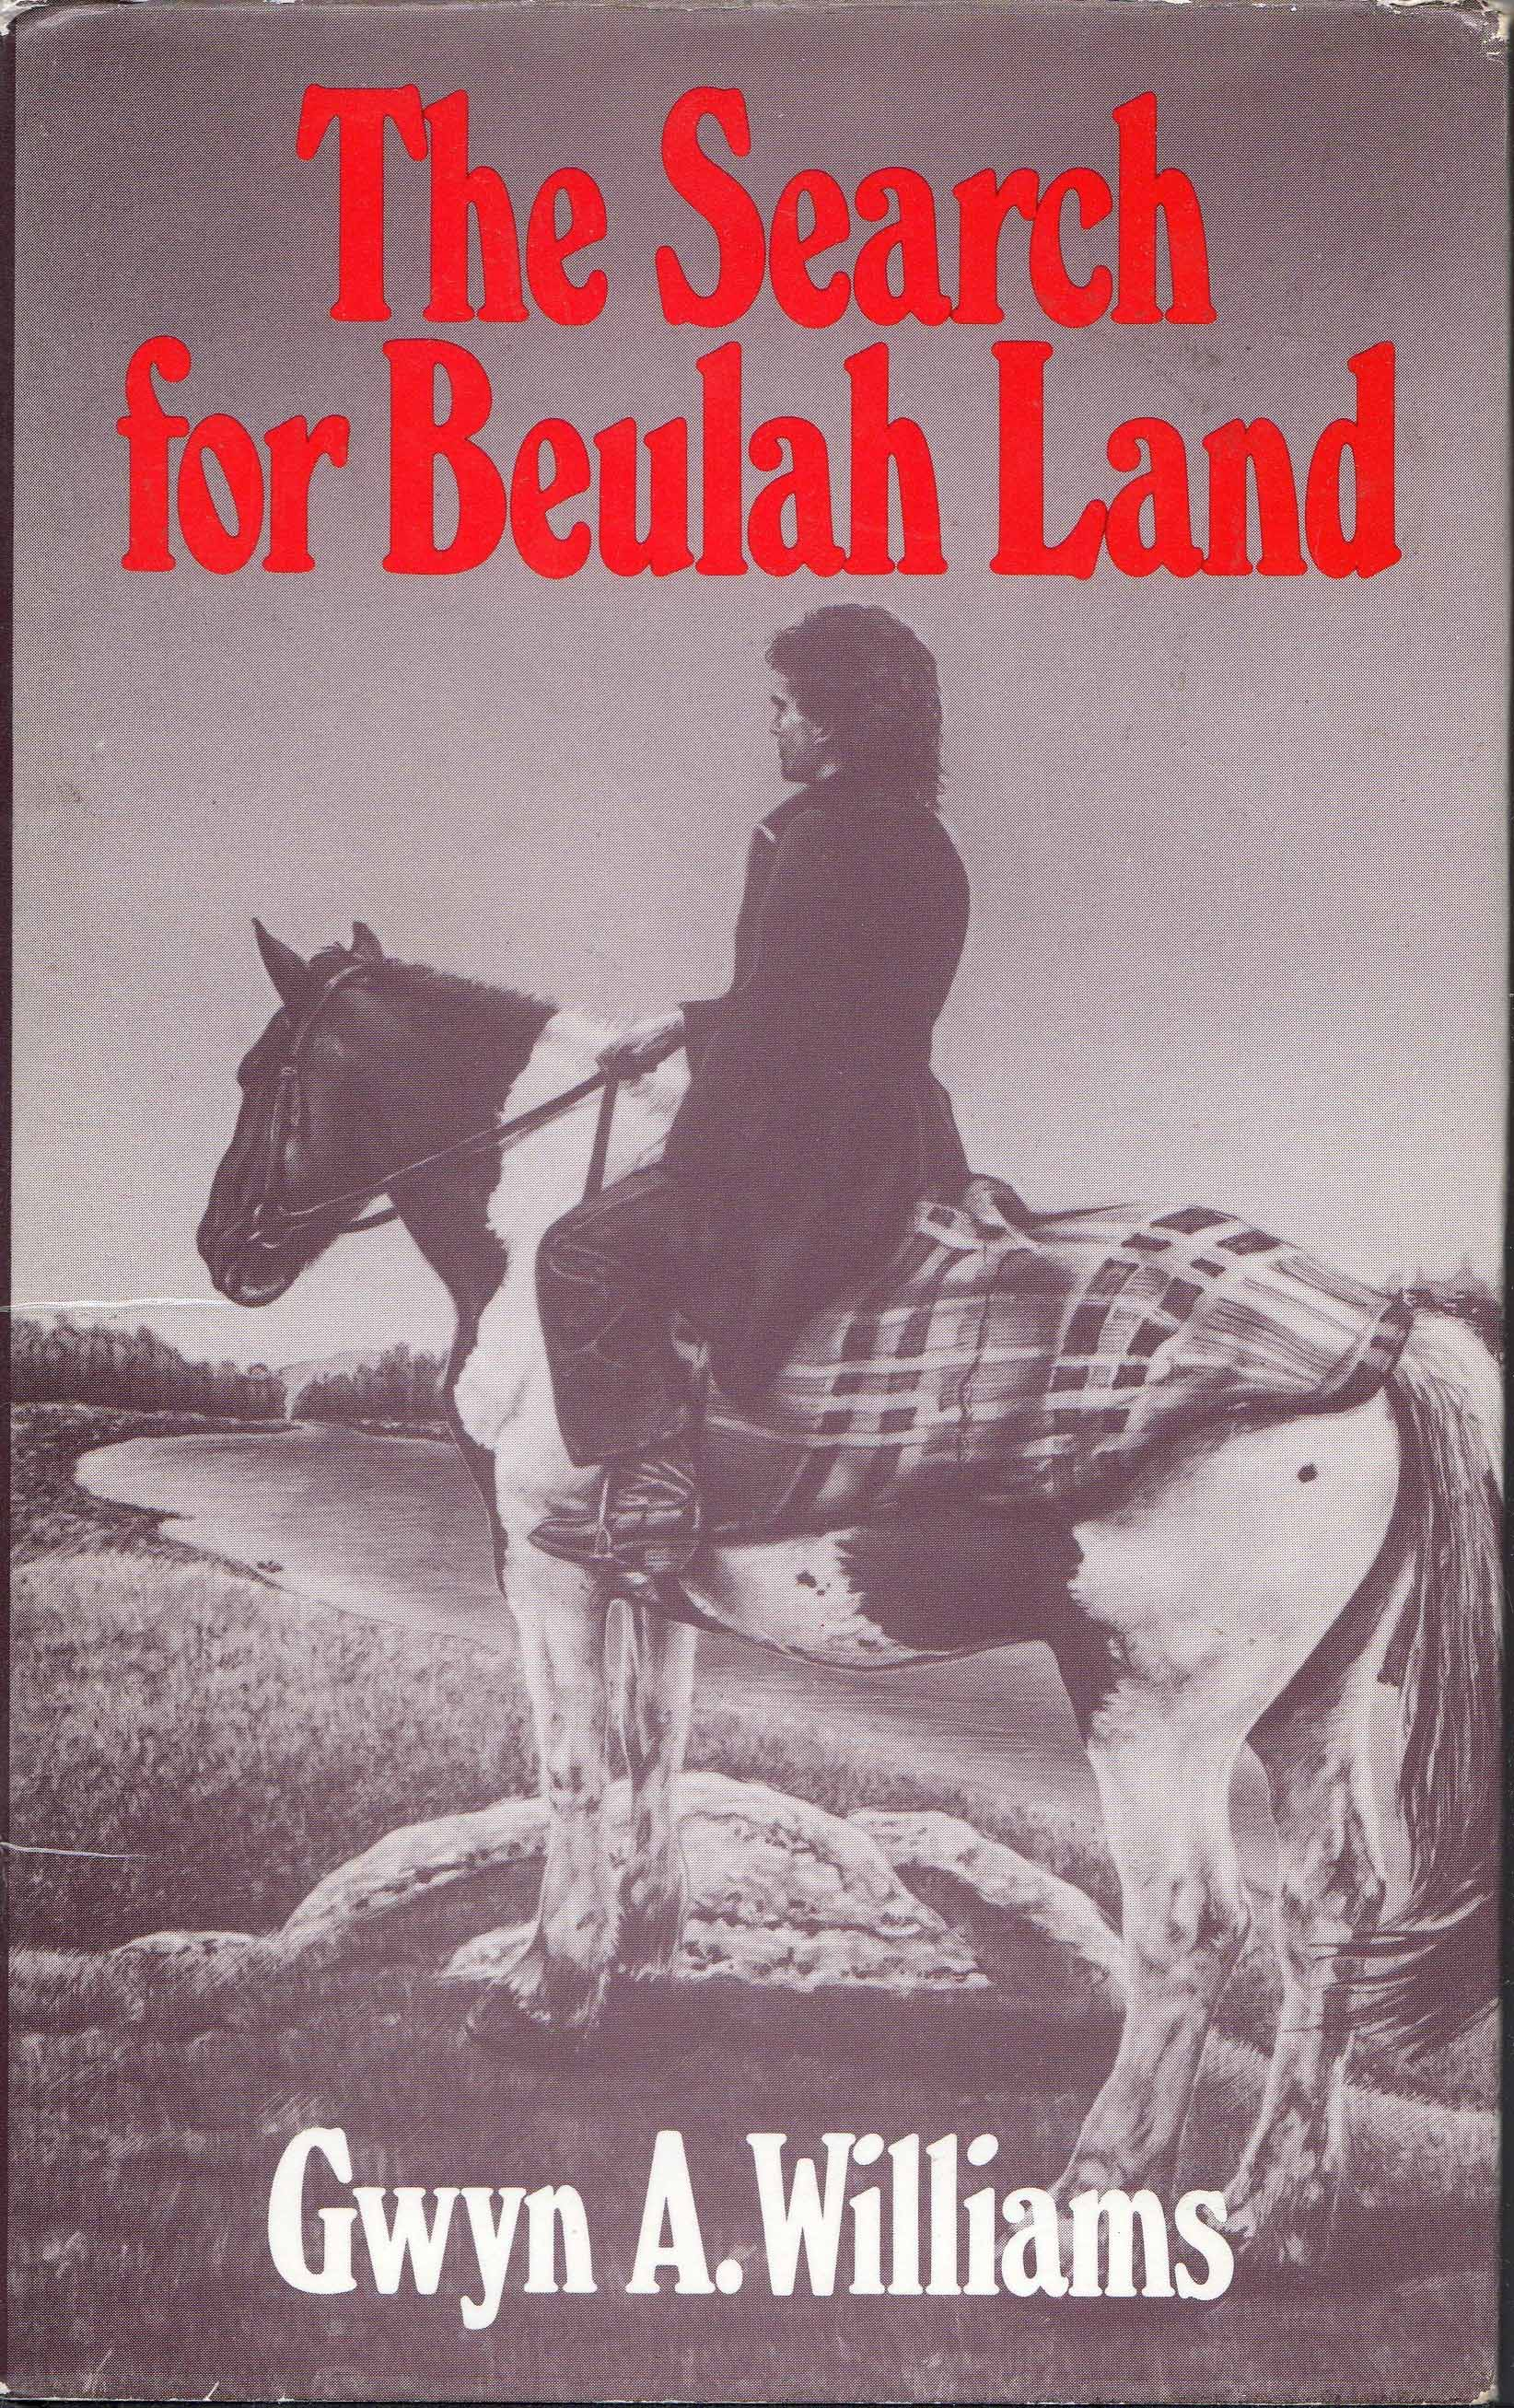 The Search for Beulah Land